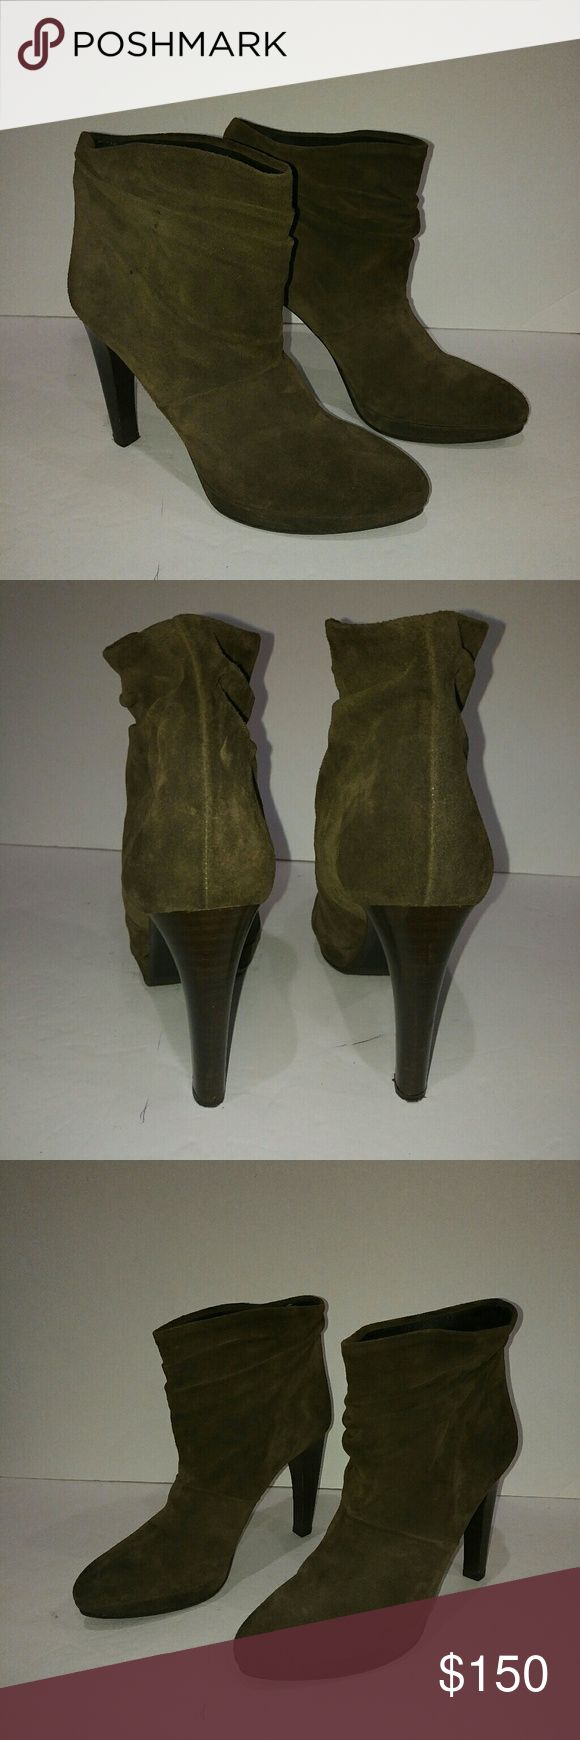 Hugo boss green suede high heel boots Hugo Boss green suede Olive boss orange made in Italy size 40 prialpa gamma hardly worn slouchy suede leather insole so soft gorgeous boots curb appeal no major flaws euro 40 eur 40 5 inch heel BOSS ORANGE Shoes Heeled Boots